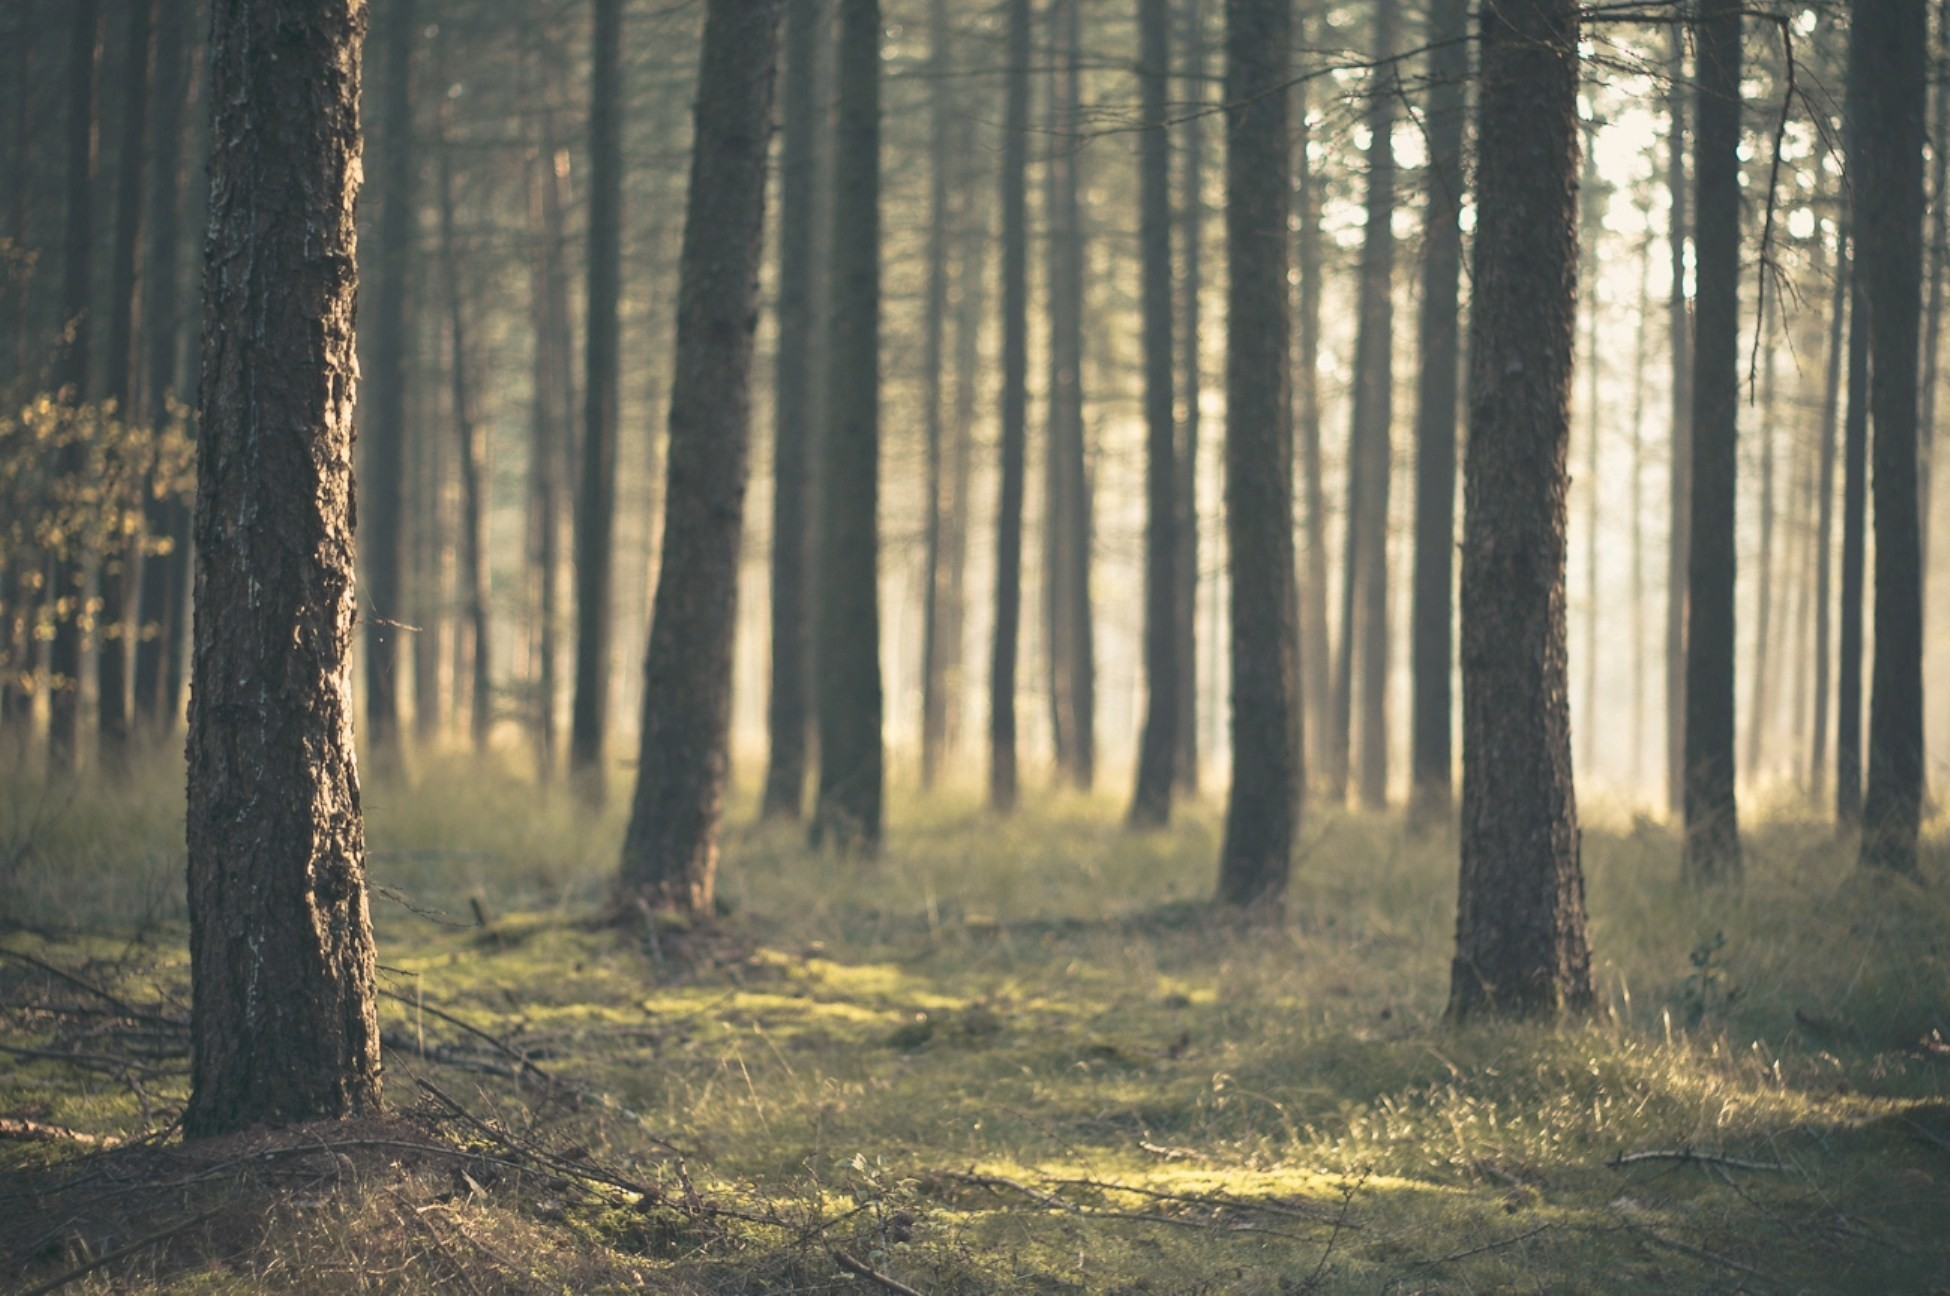 Res: 1950x1296, Pine-Tree-Forest-Wallpaper-Background-HD-2